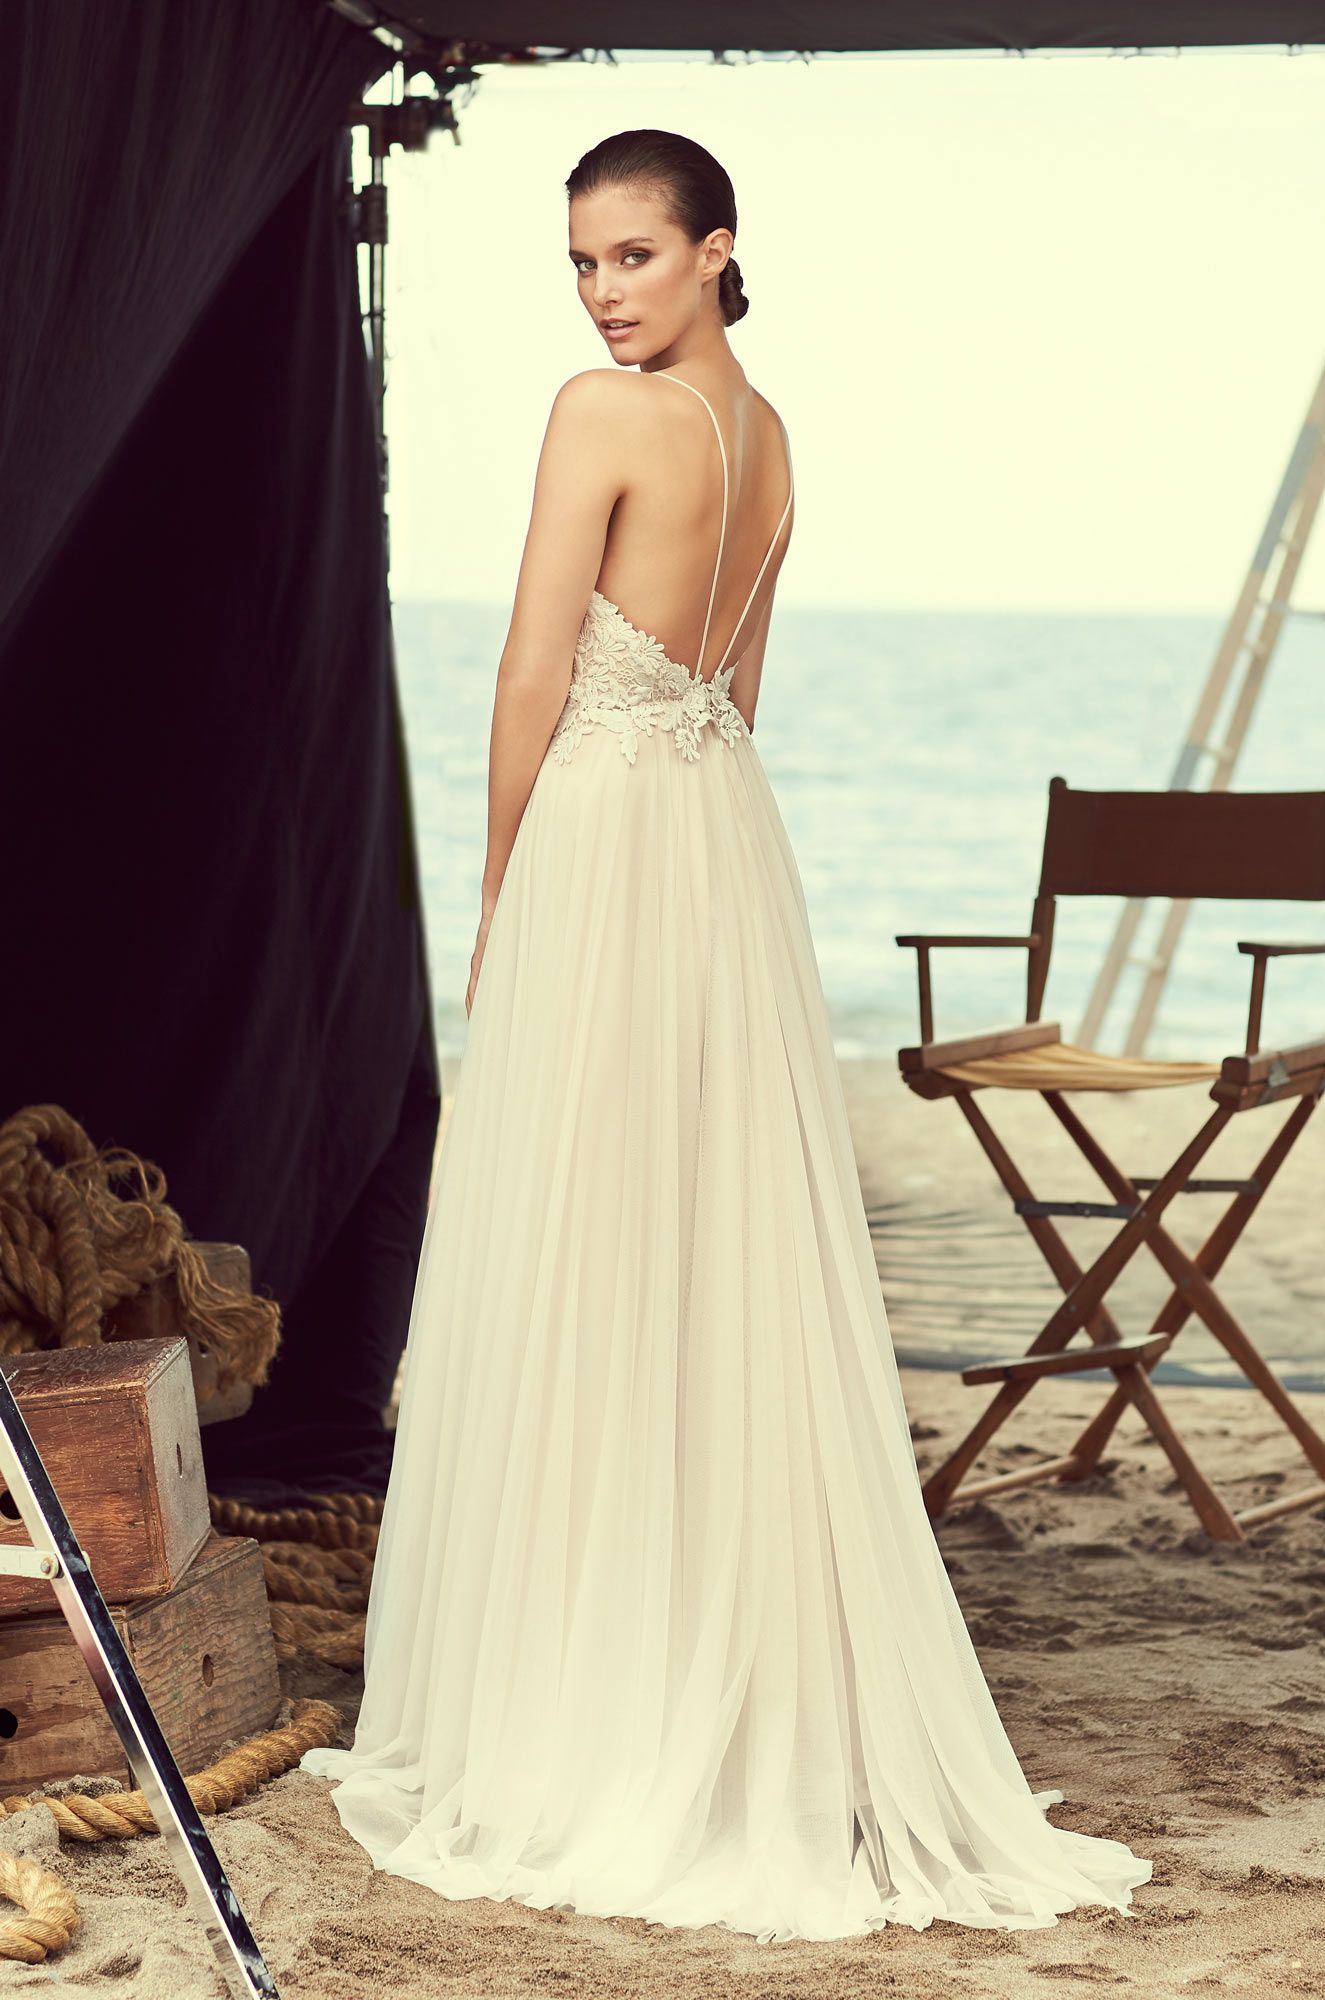 Plunging sweetheart wedding dress style lace bodice tulle